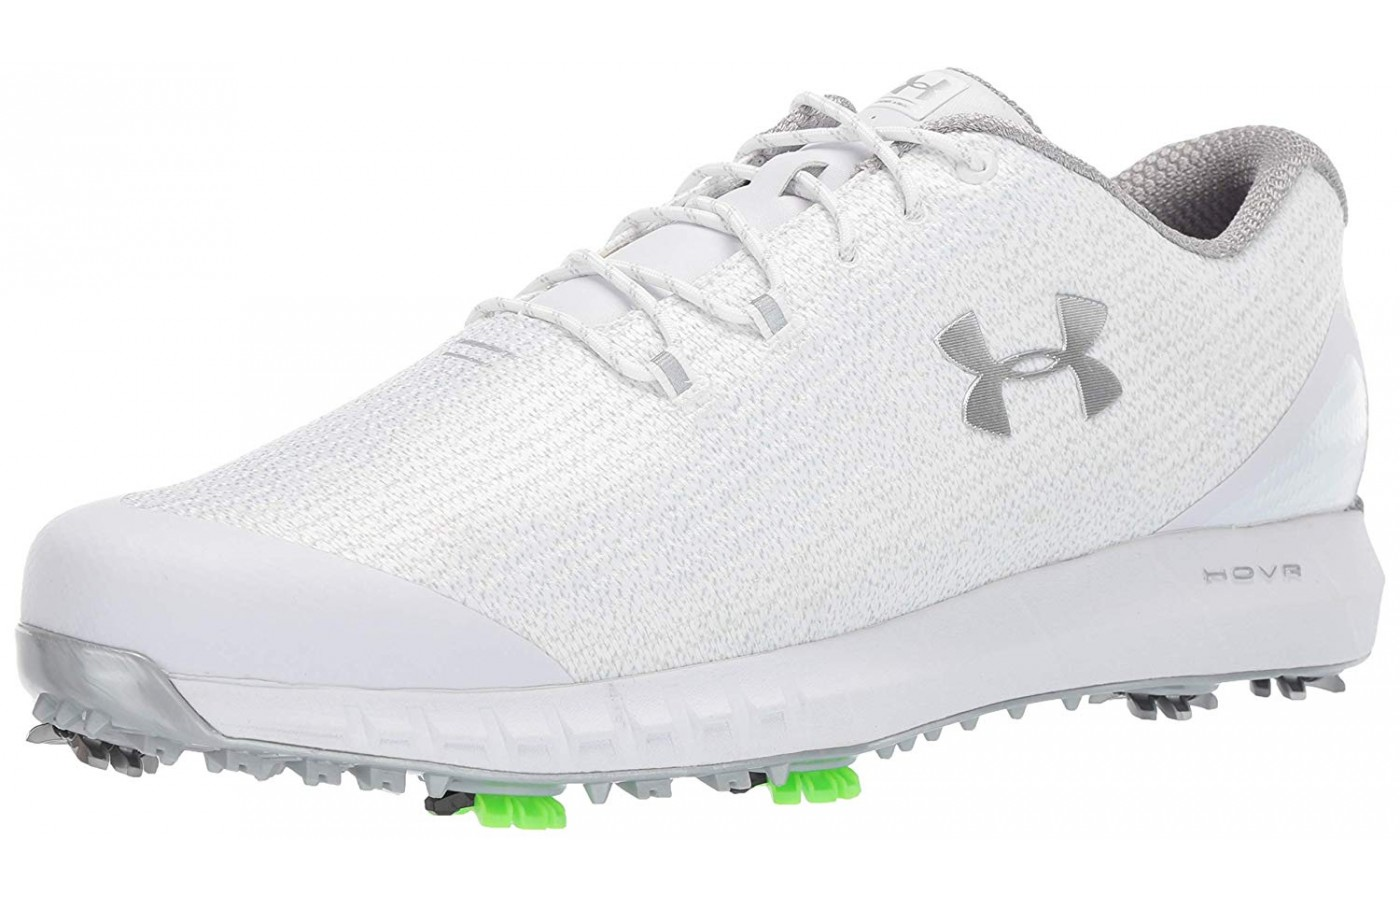 Under Armour HOVR Drive Woven angle